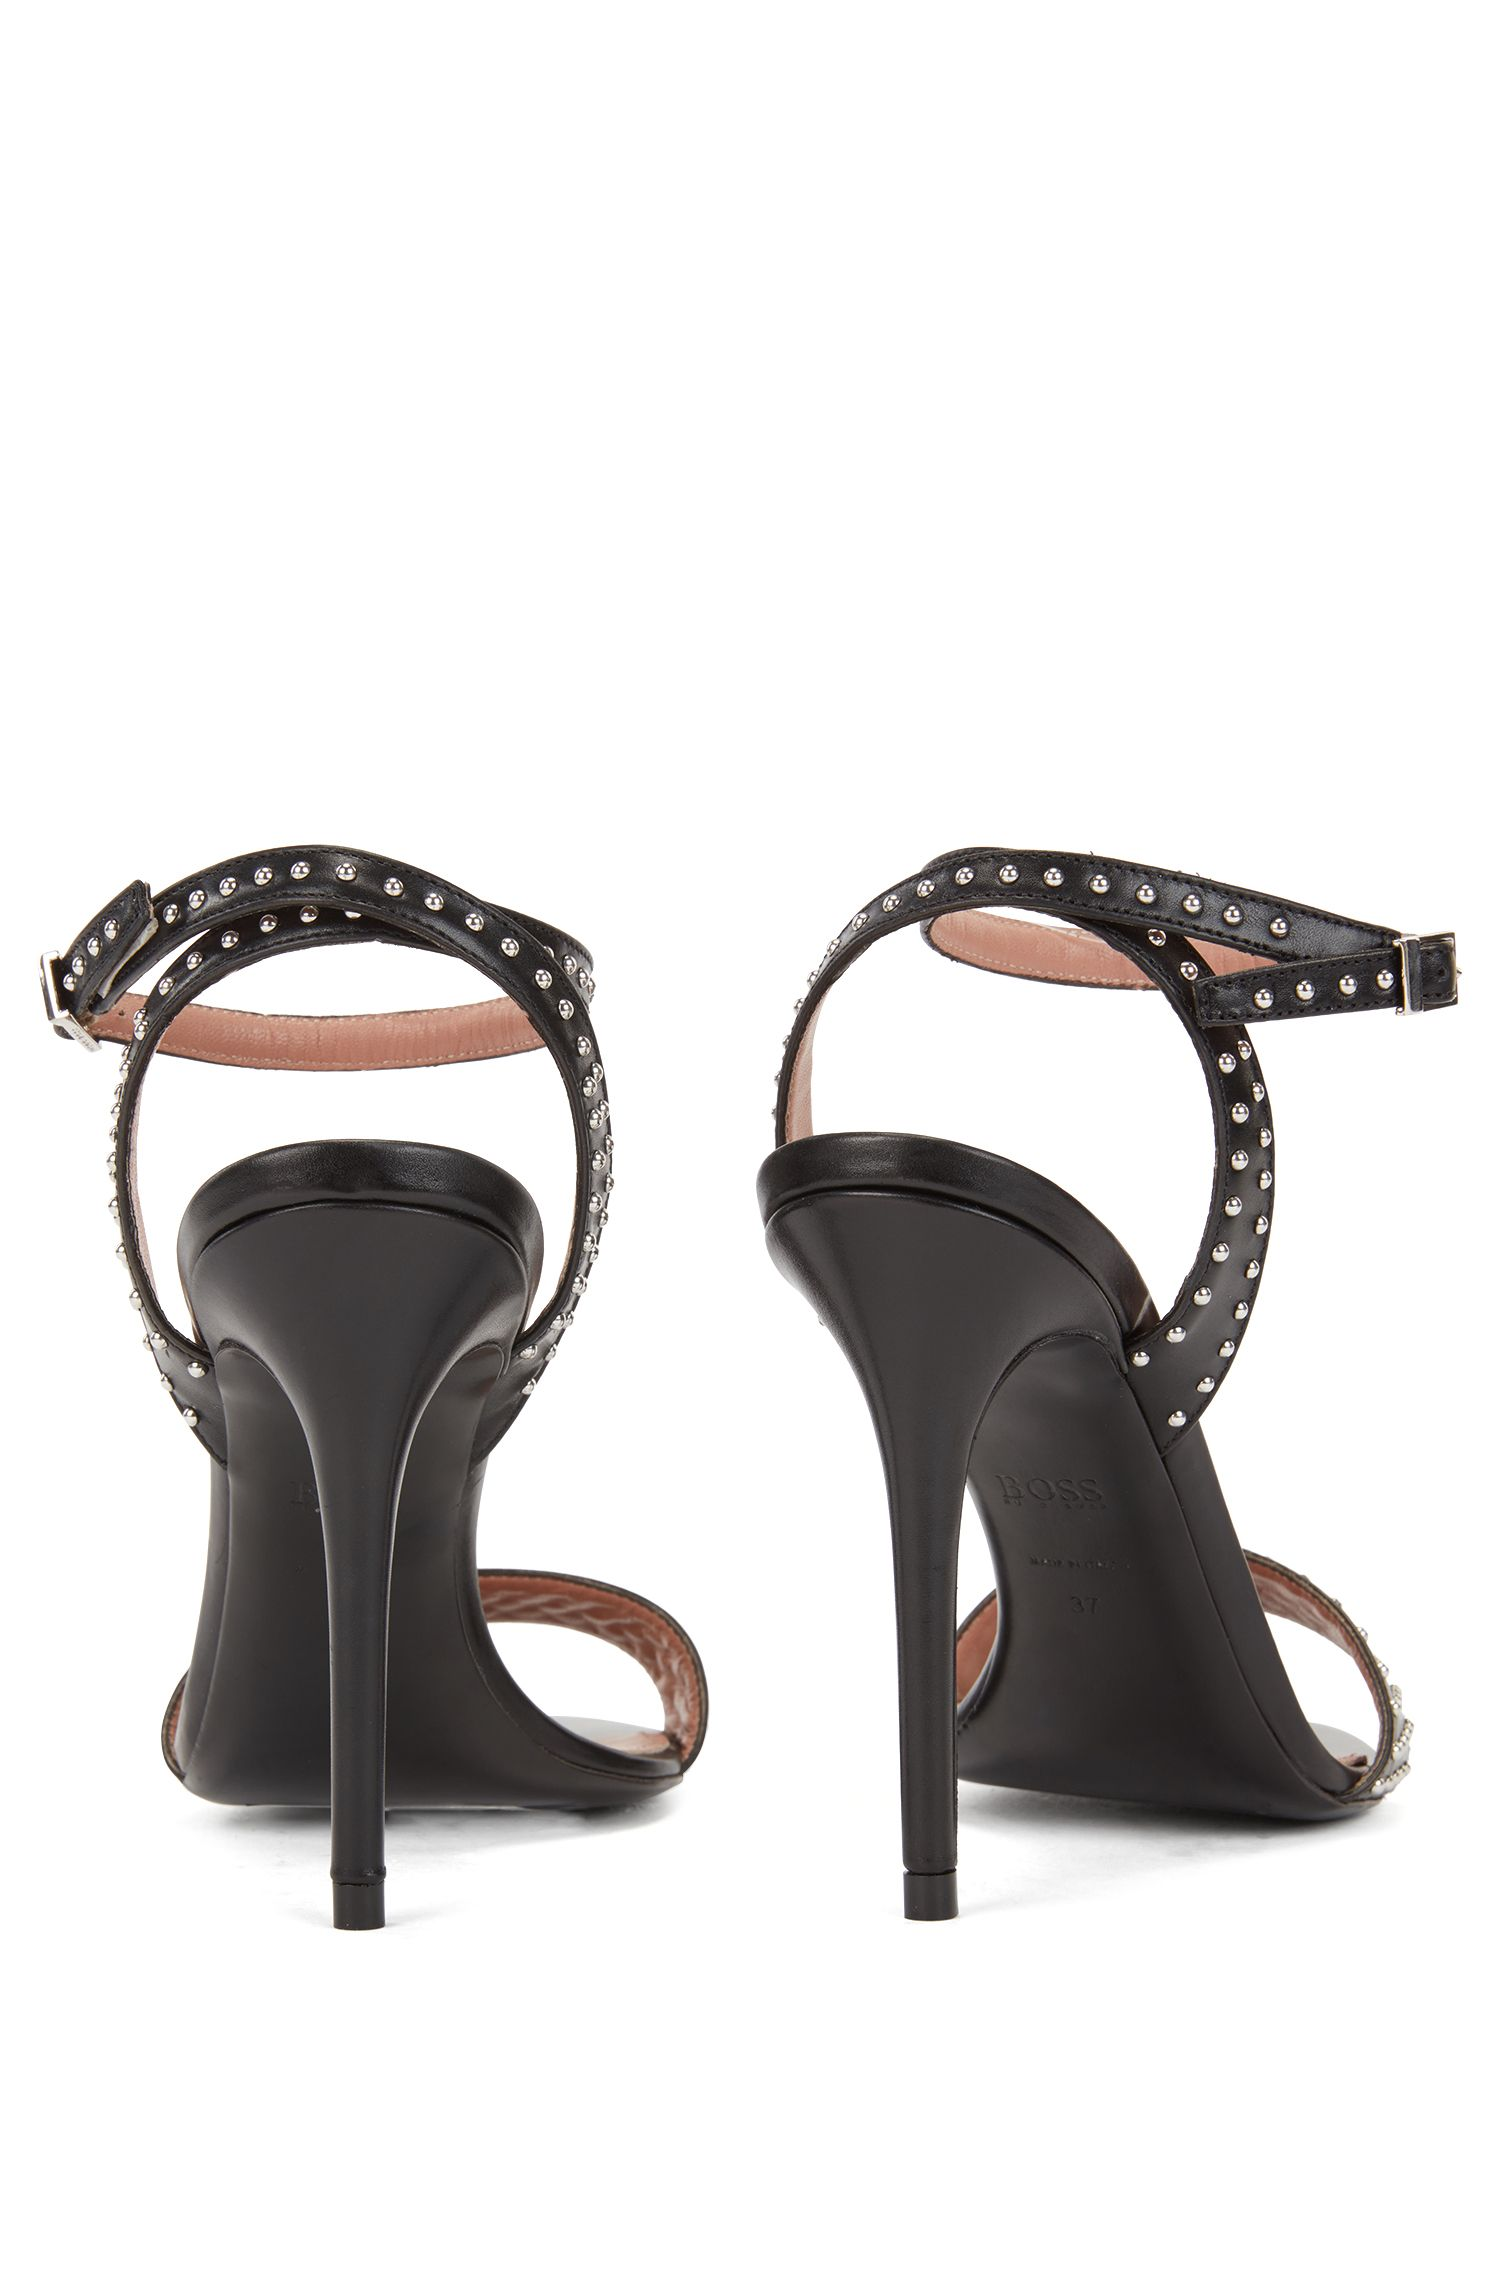 Strappy sandals in Italian calf leather with stud detailing, Black